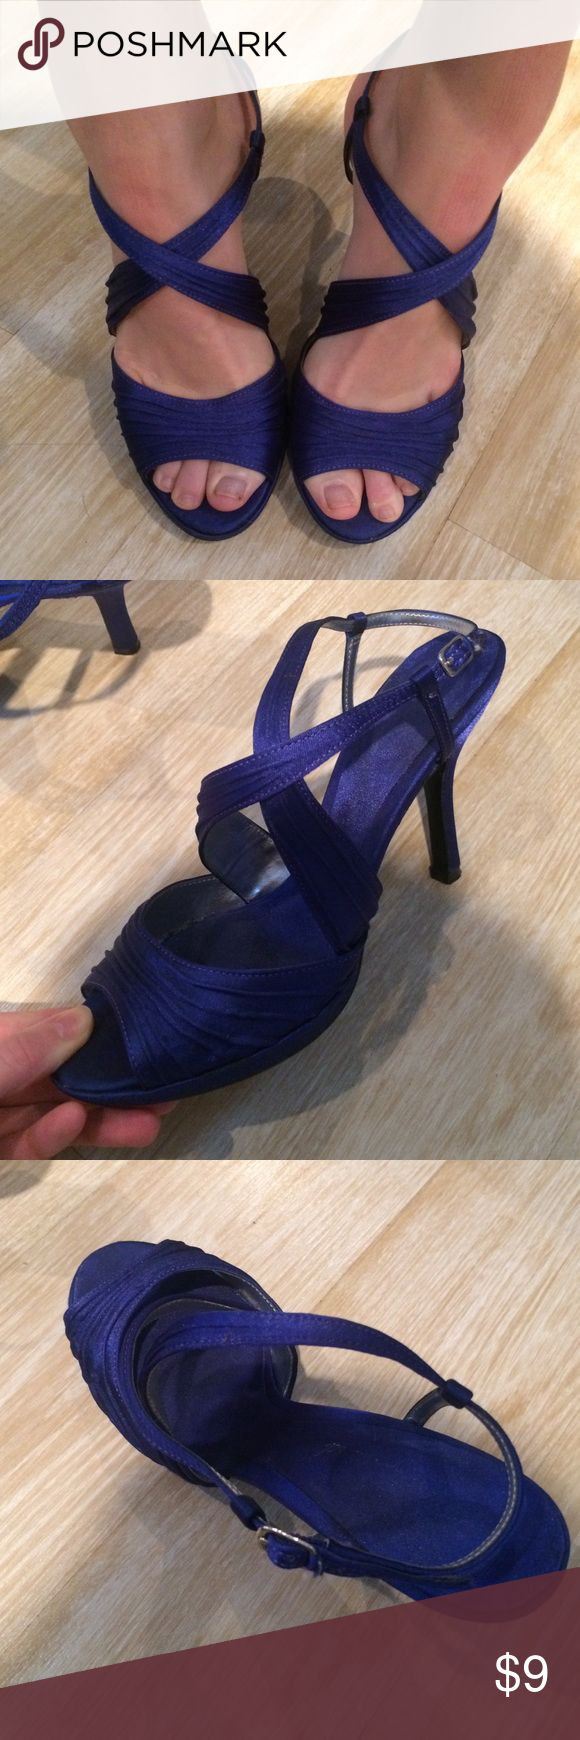 """Royal Blue Strappy Heels Royal blue strappy heels. Beautiful crossover strapping. Size 7.5. Adjustable ankle straps. Heels are 3"""" with a 0.5"""" platform. Worn only once, so good condition. These have a satin sheen to them. Shoes Heels"""